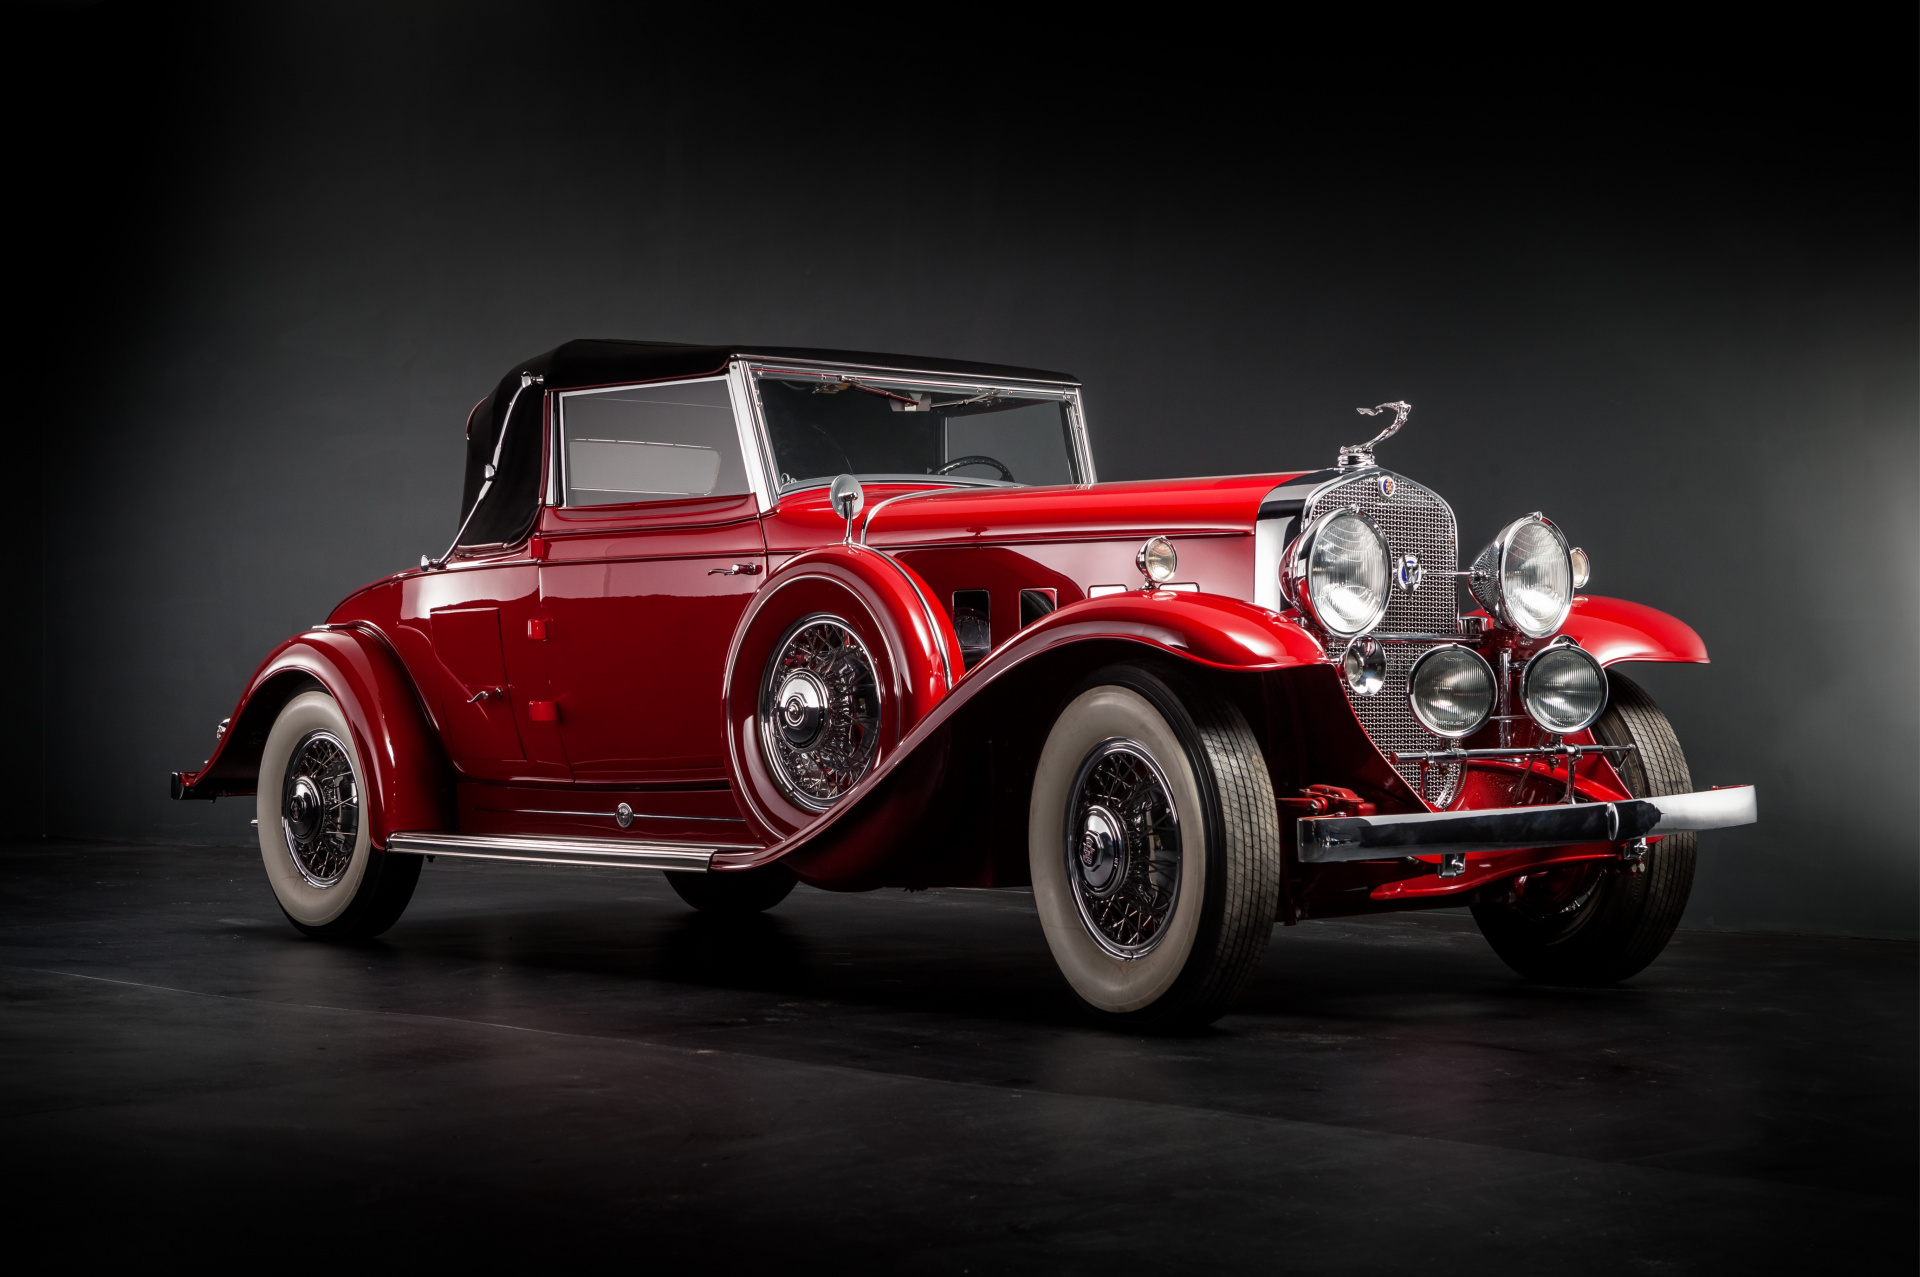 American cars from 1920s to 1930s